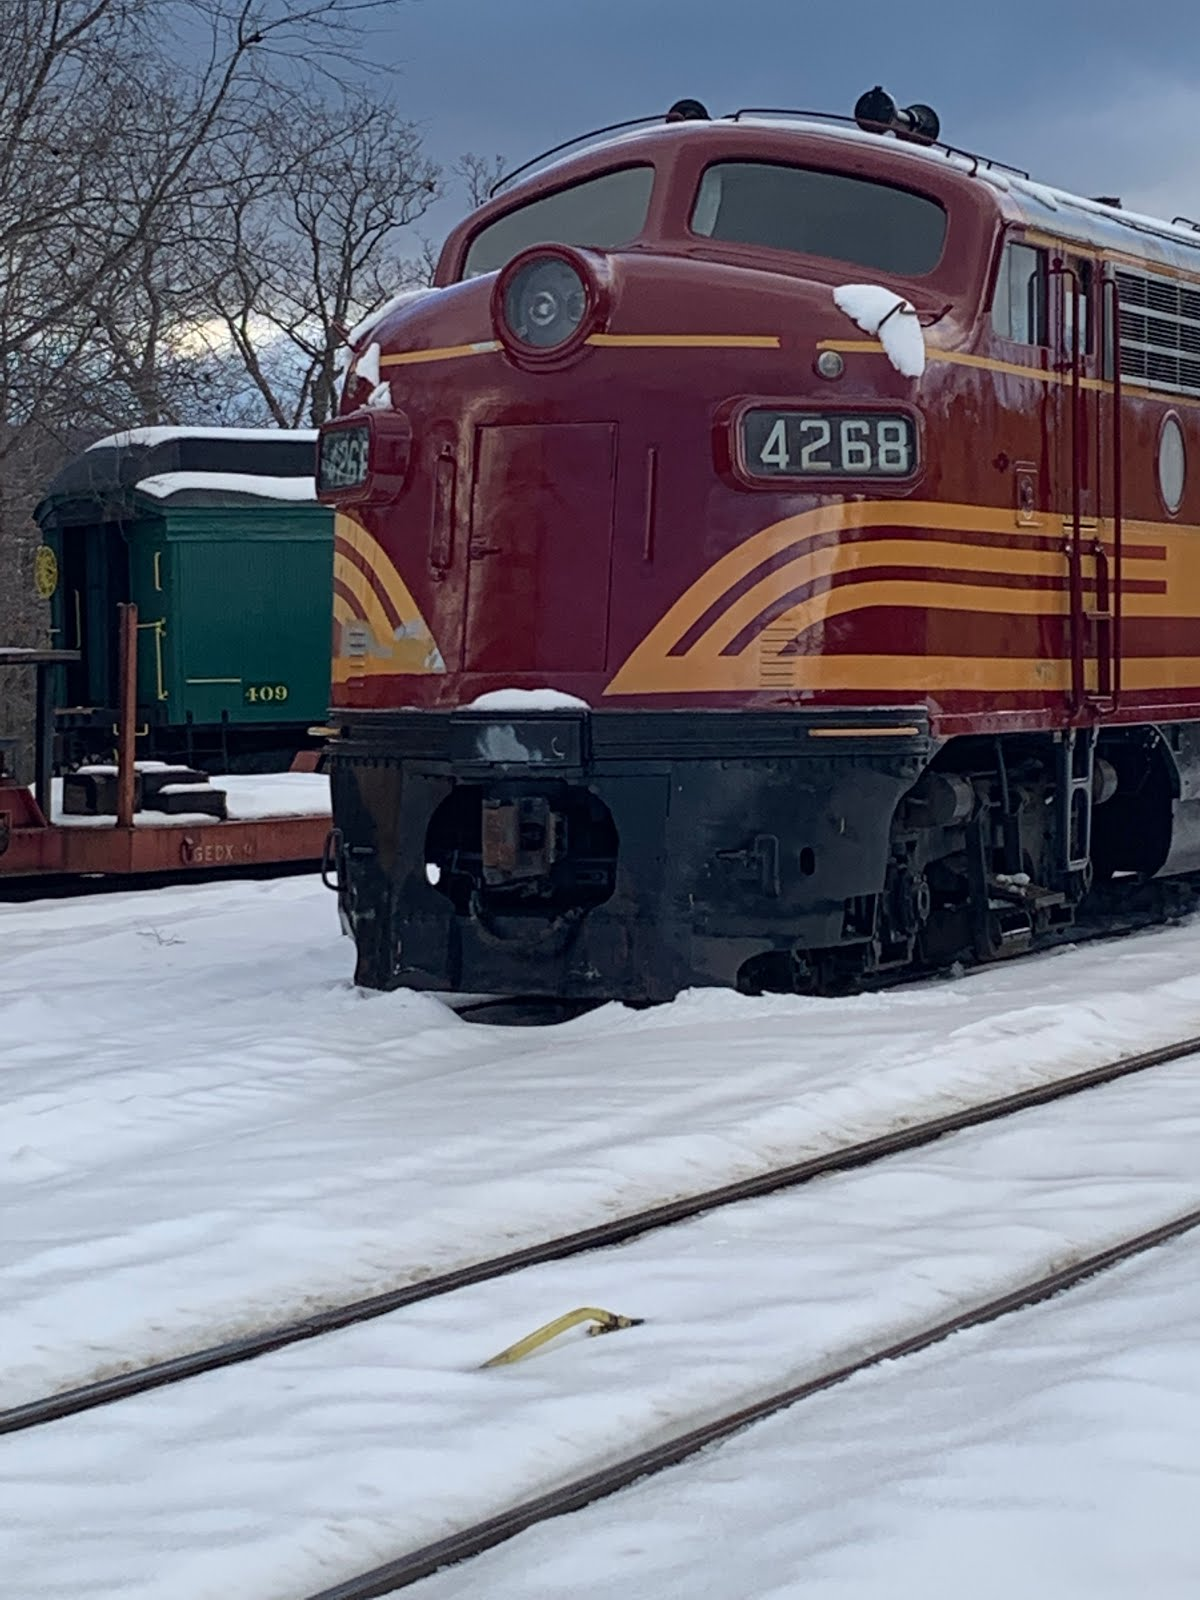 4268 in the snow